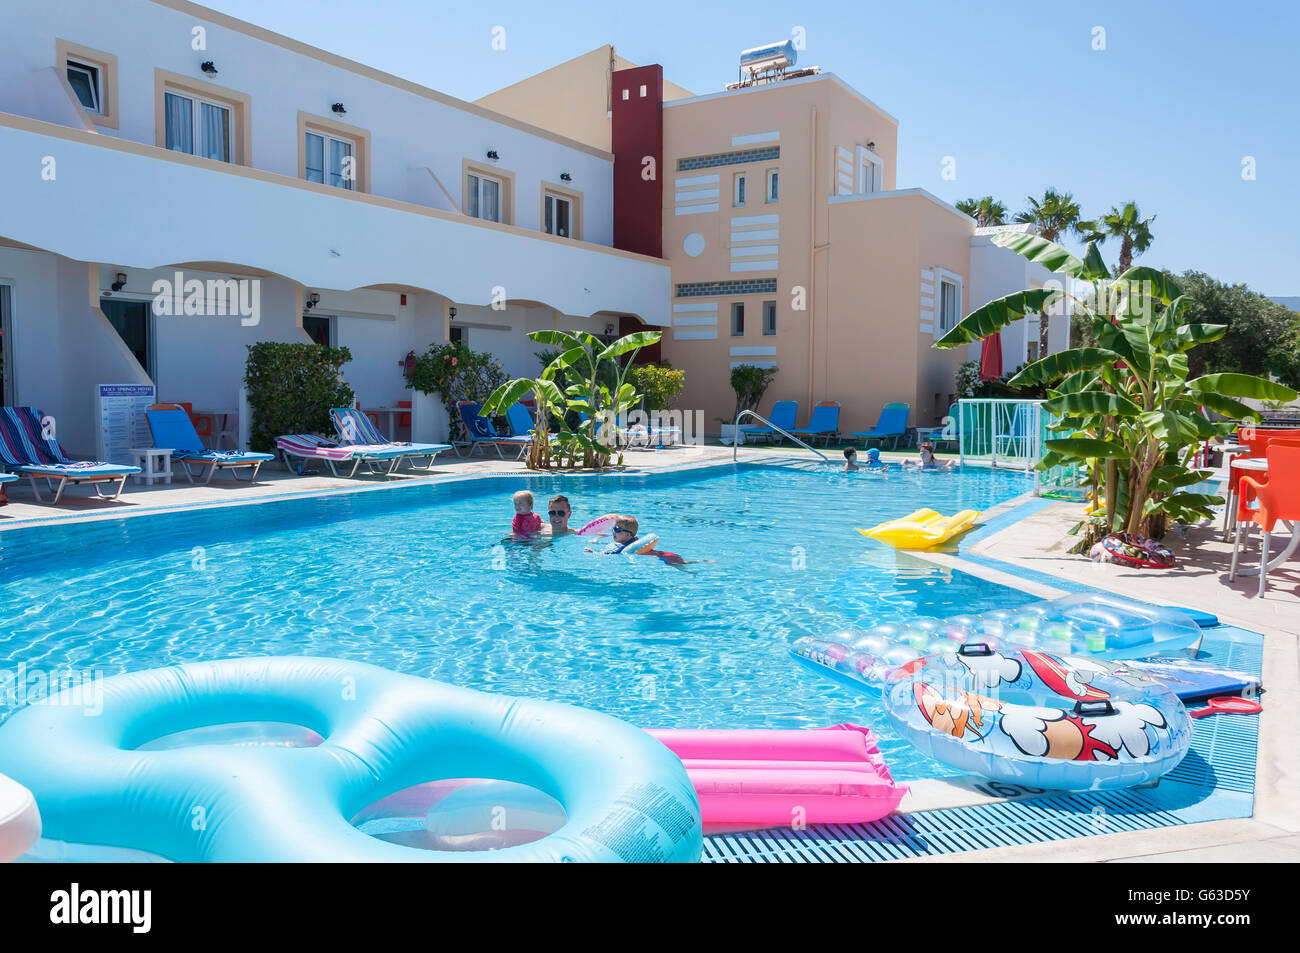 Family in swimming pool at Alice Springs Hotel, Lambi, Kos (Cos), The Dodecanese, South Aegean Region, Greece - Stock Image